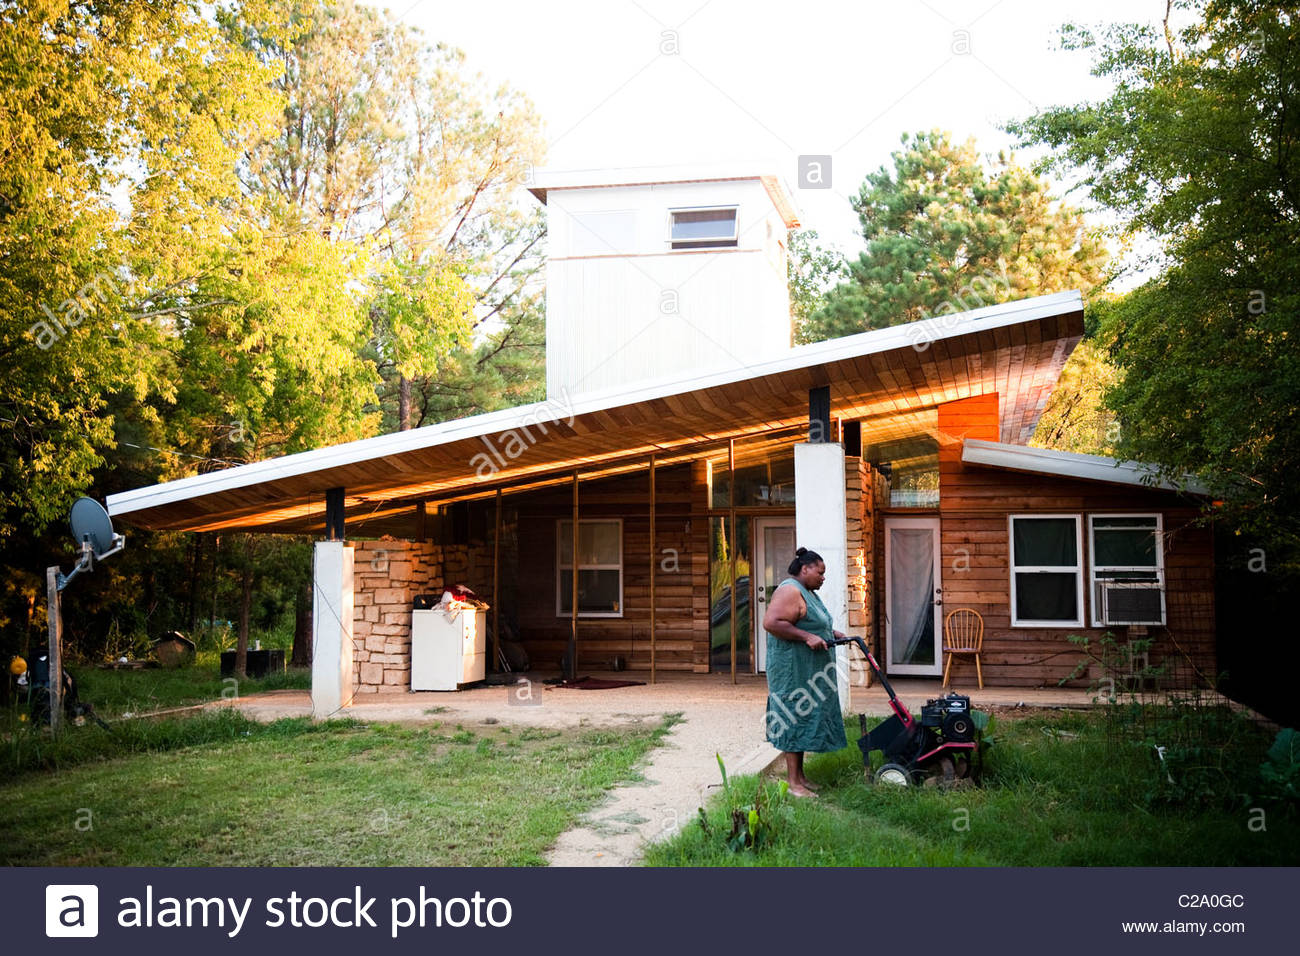 A woman cuts grass in her front yard in rural Alabama. - Stock Image